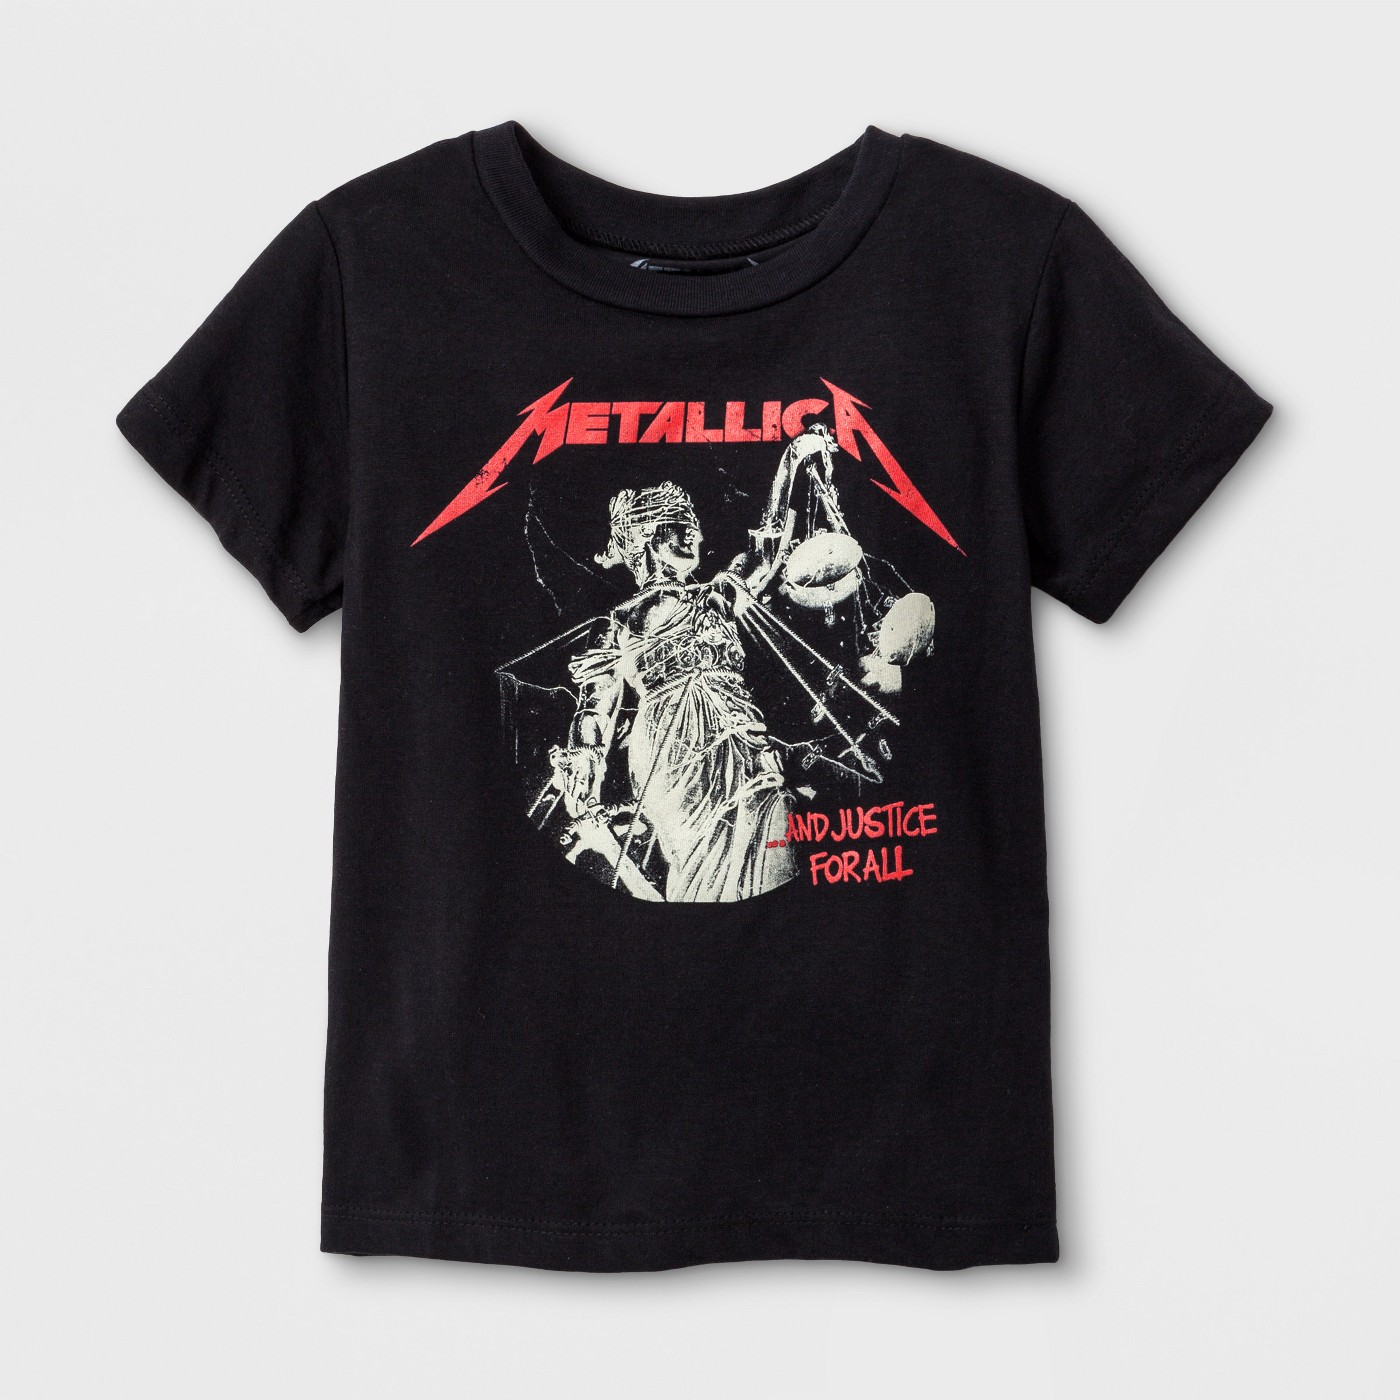 Toddler Boys' Metallica Short Sleeve T-Shirt - Black - image 1 of 1